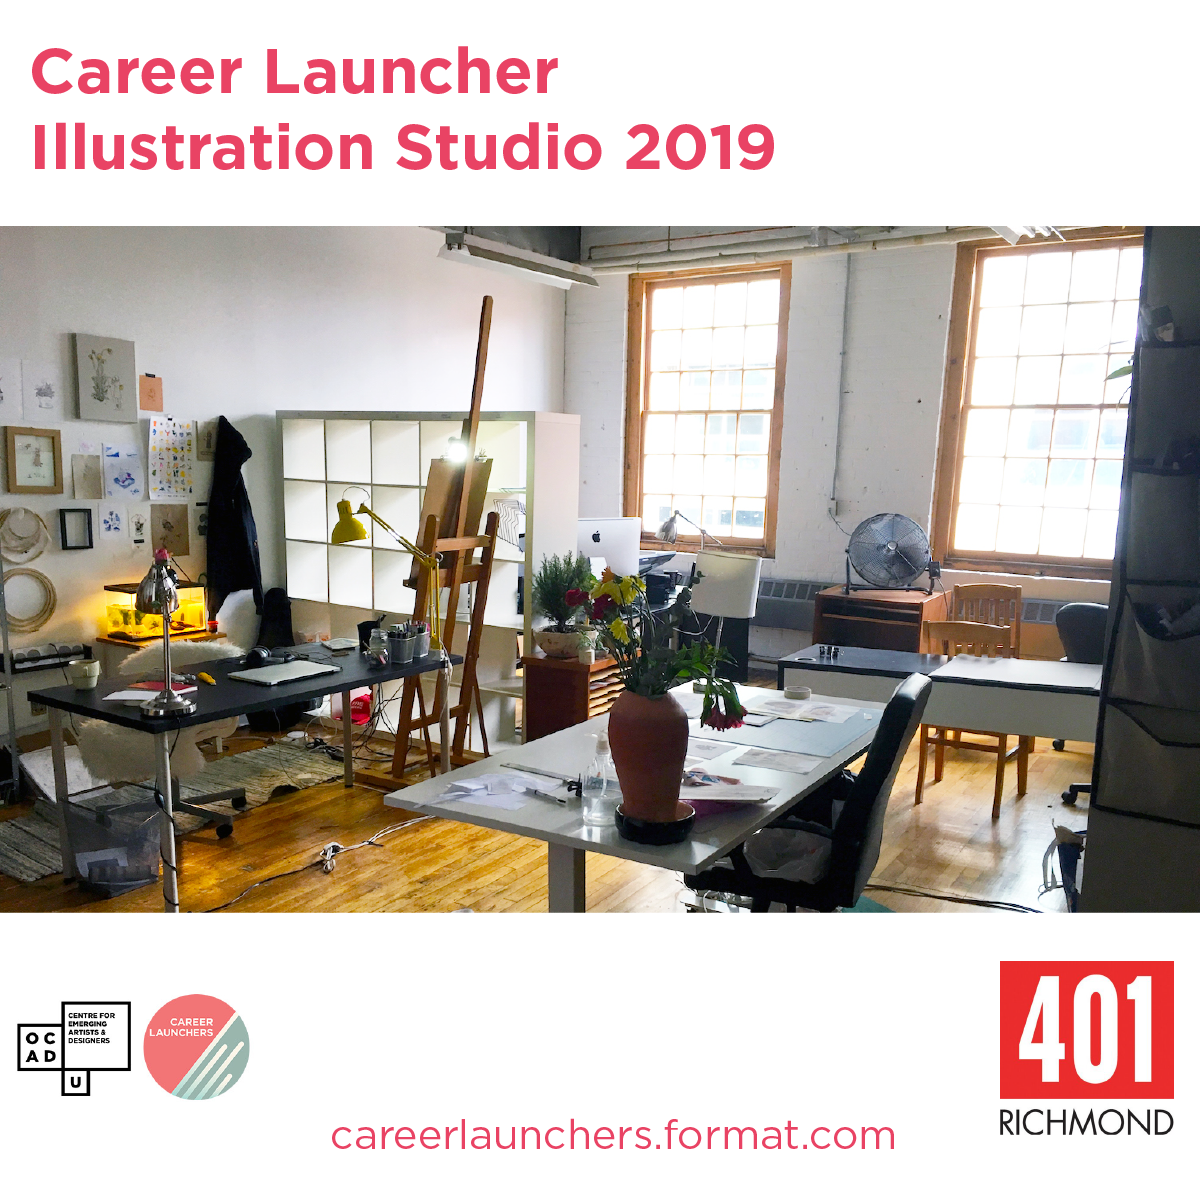 OPPORTUNITY DESCRIPTION  DEADLINE: Monday, April 22, 2019  The Centre for Emerging Artists & Designers is excited to bring back